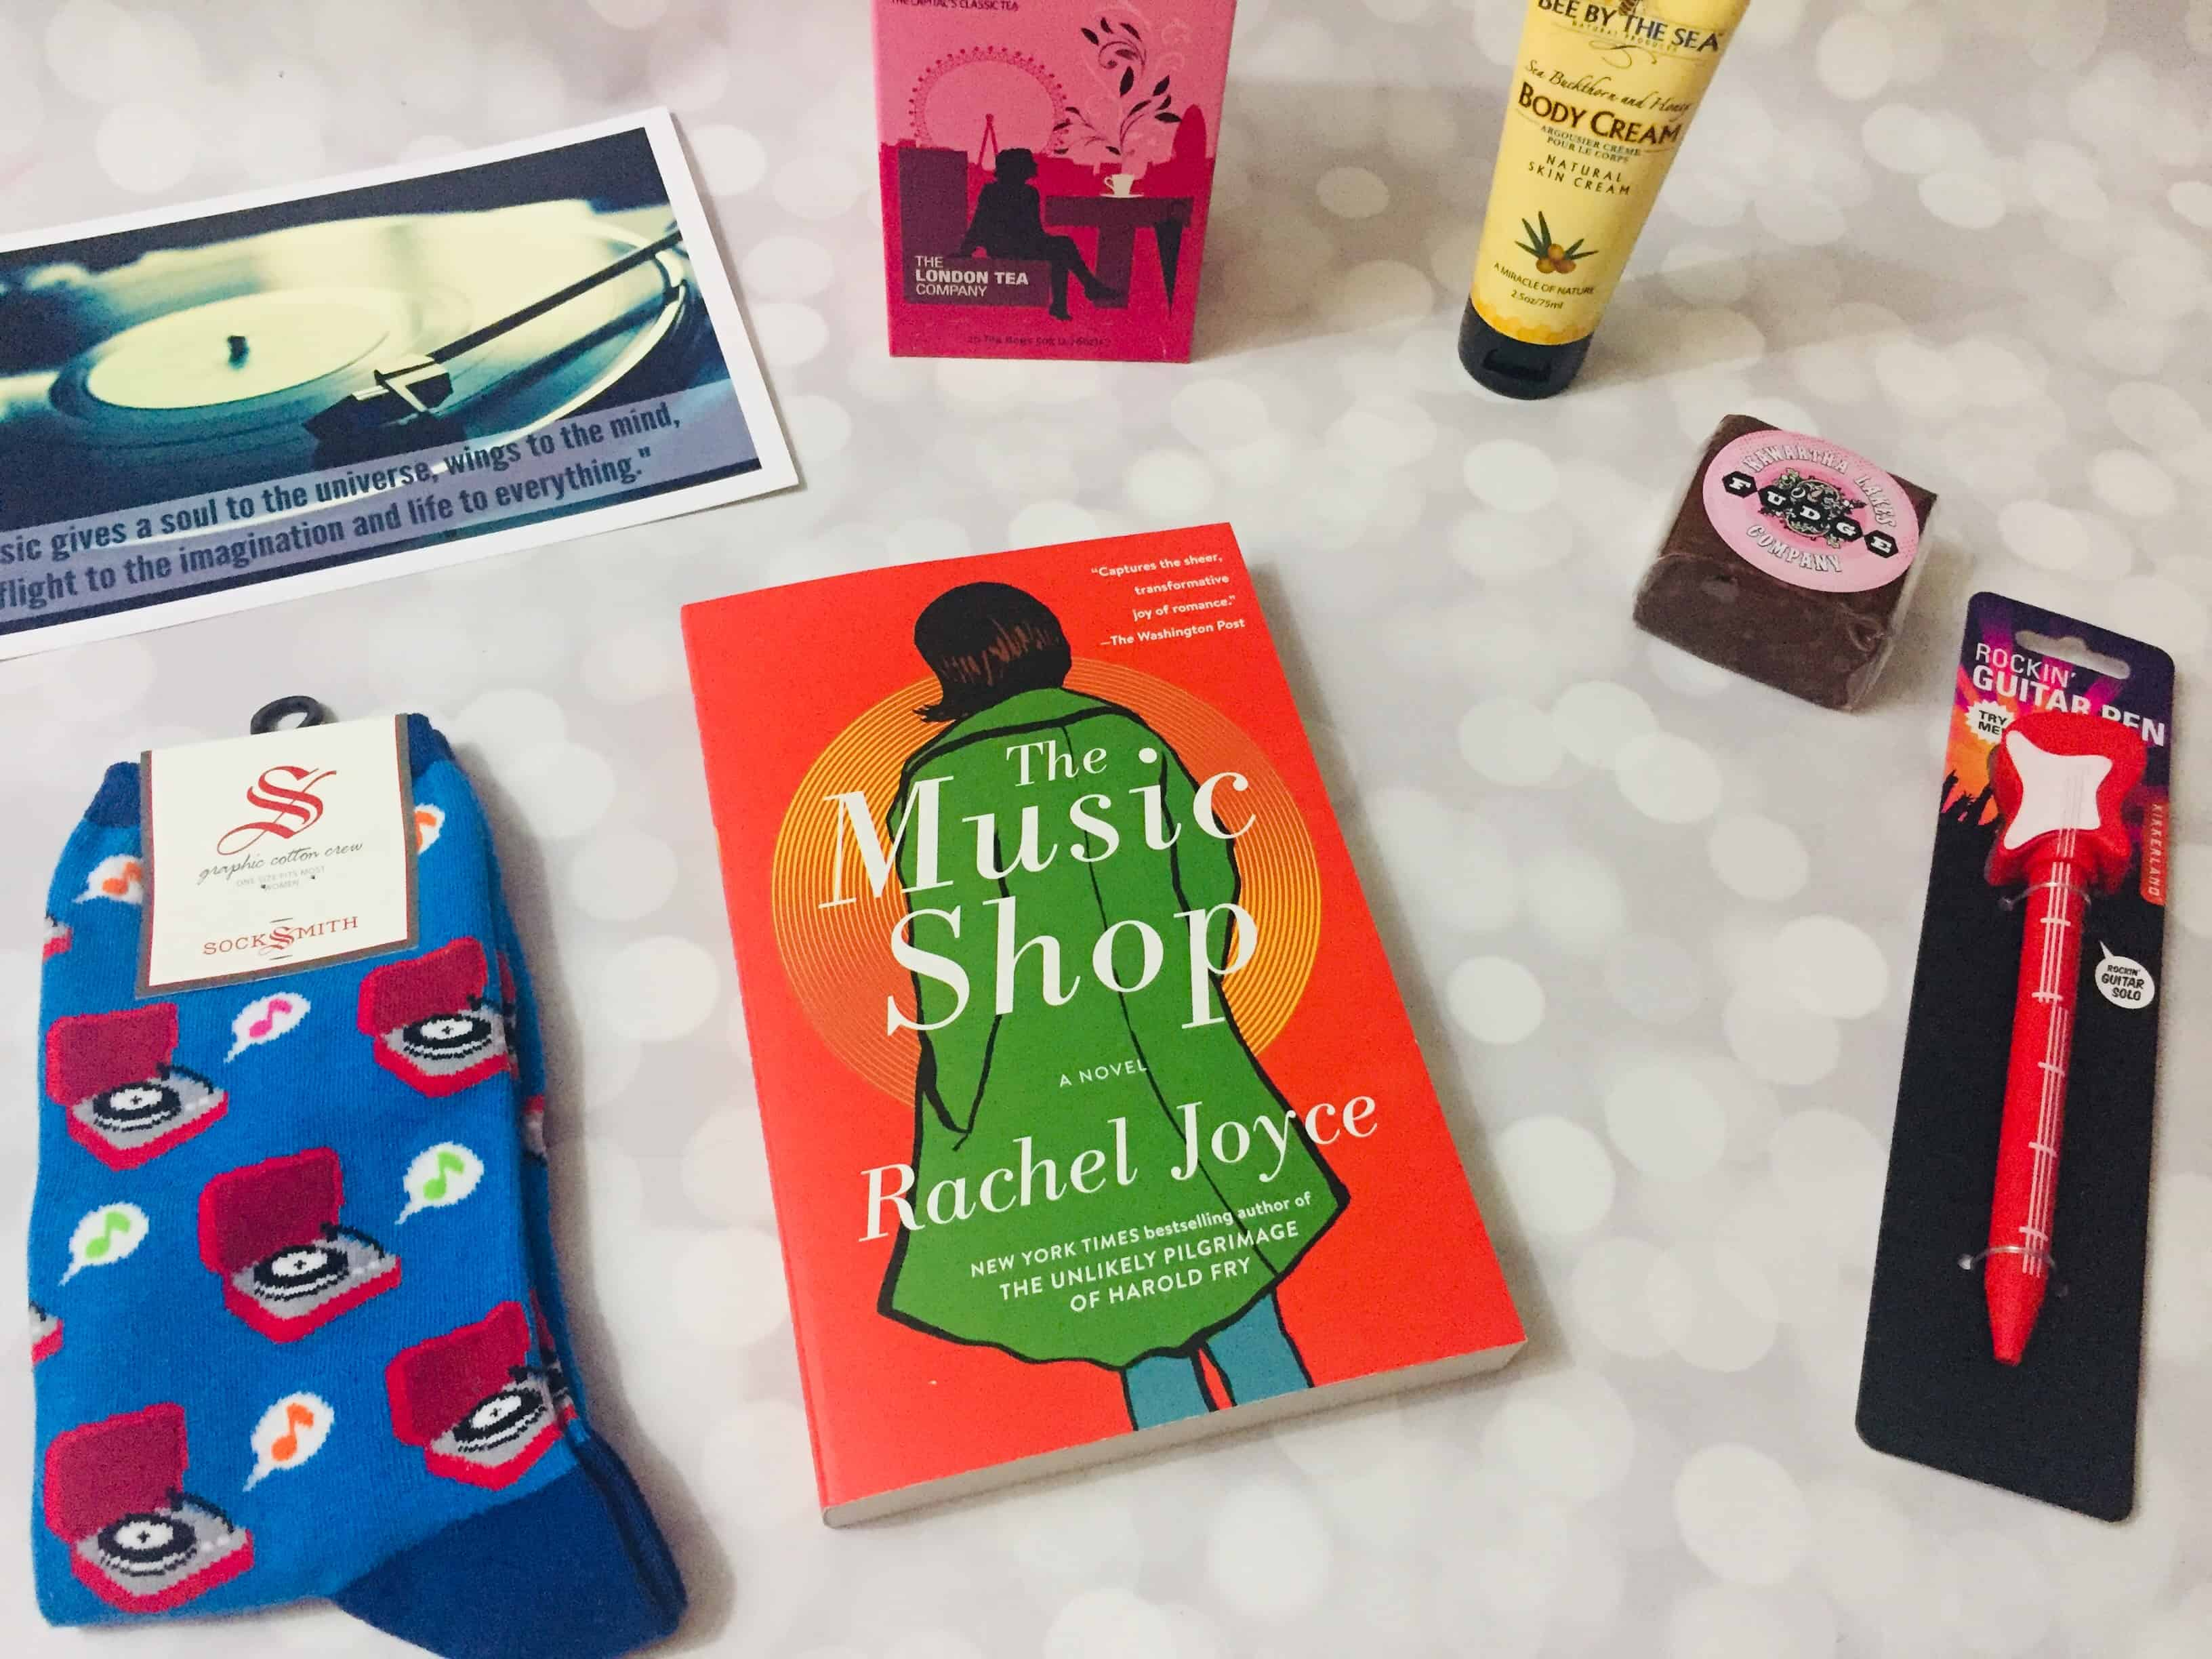 Sweet Reads Box November 2018 Subscription Box Review + Coupon